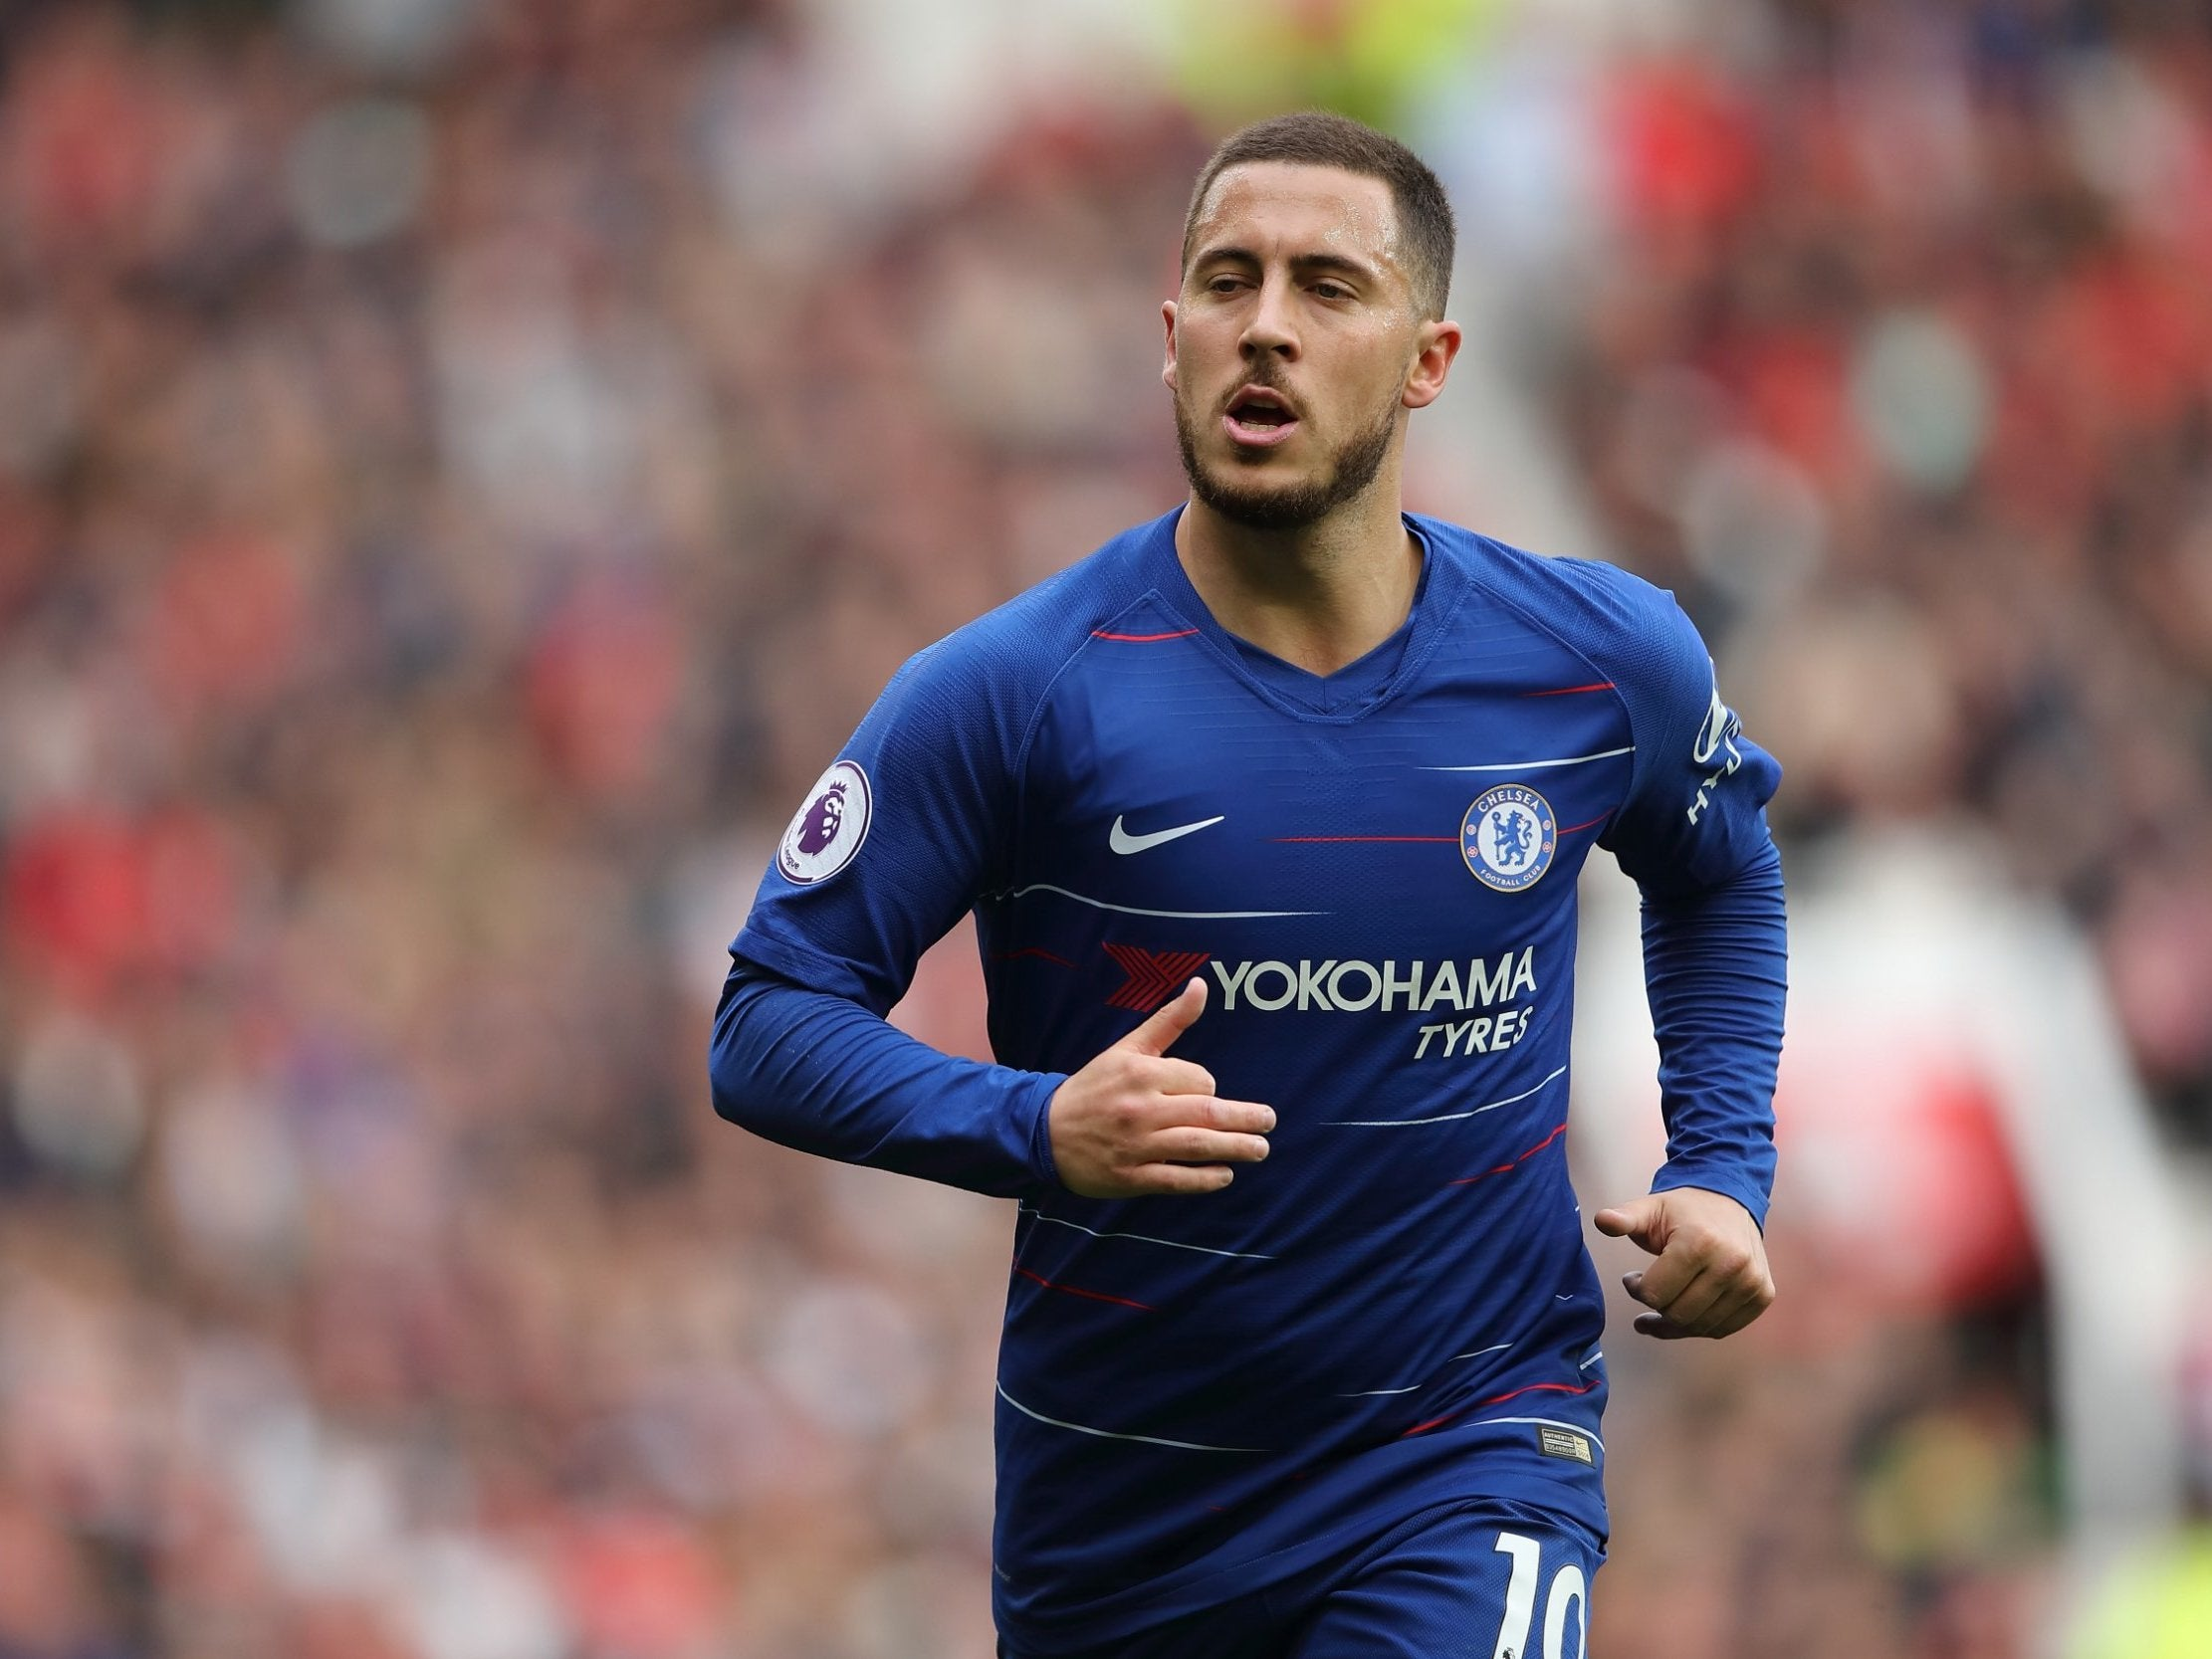 ccf0fc685 Chelsea transfer news  Blues summer plans in limbo as club wait for Fifa  verdict on ban appeal